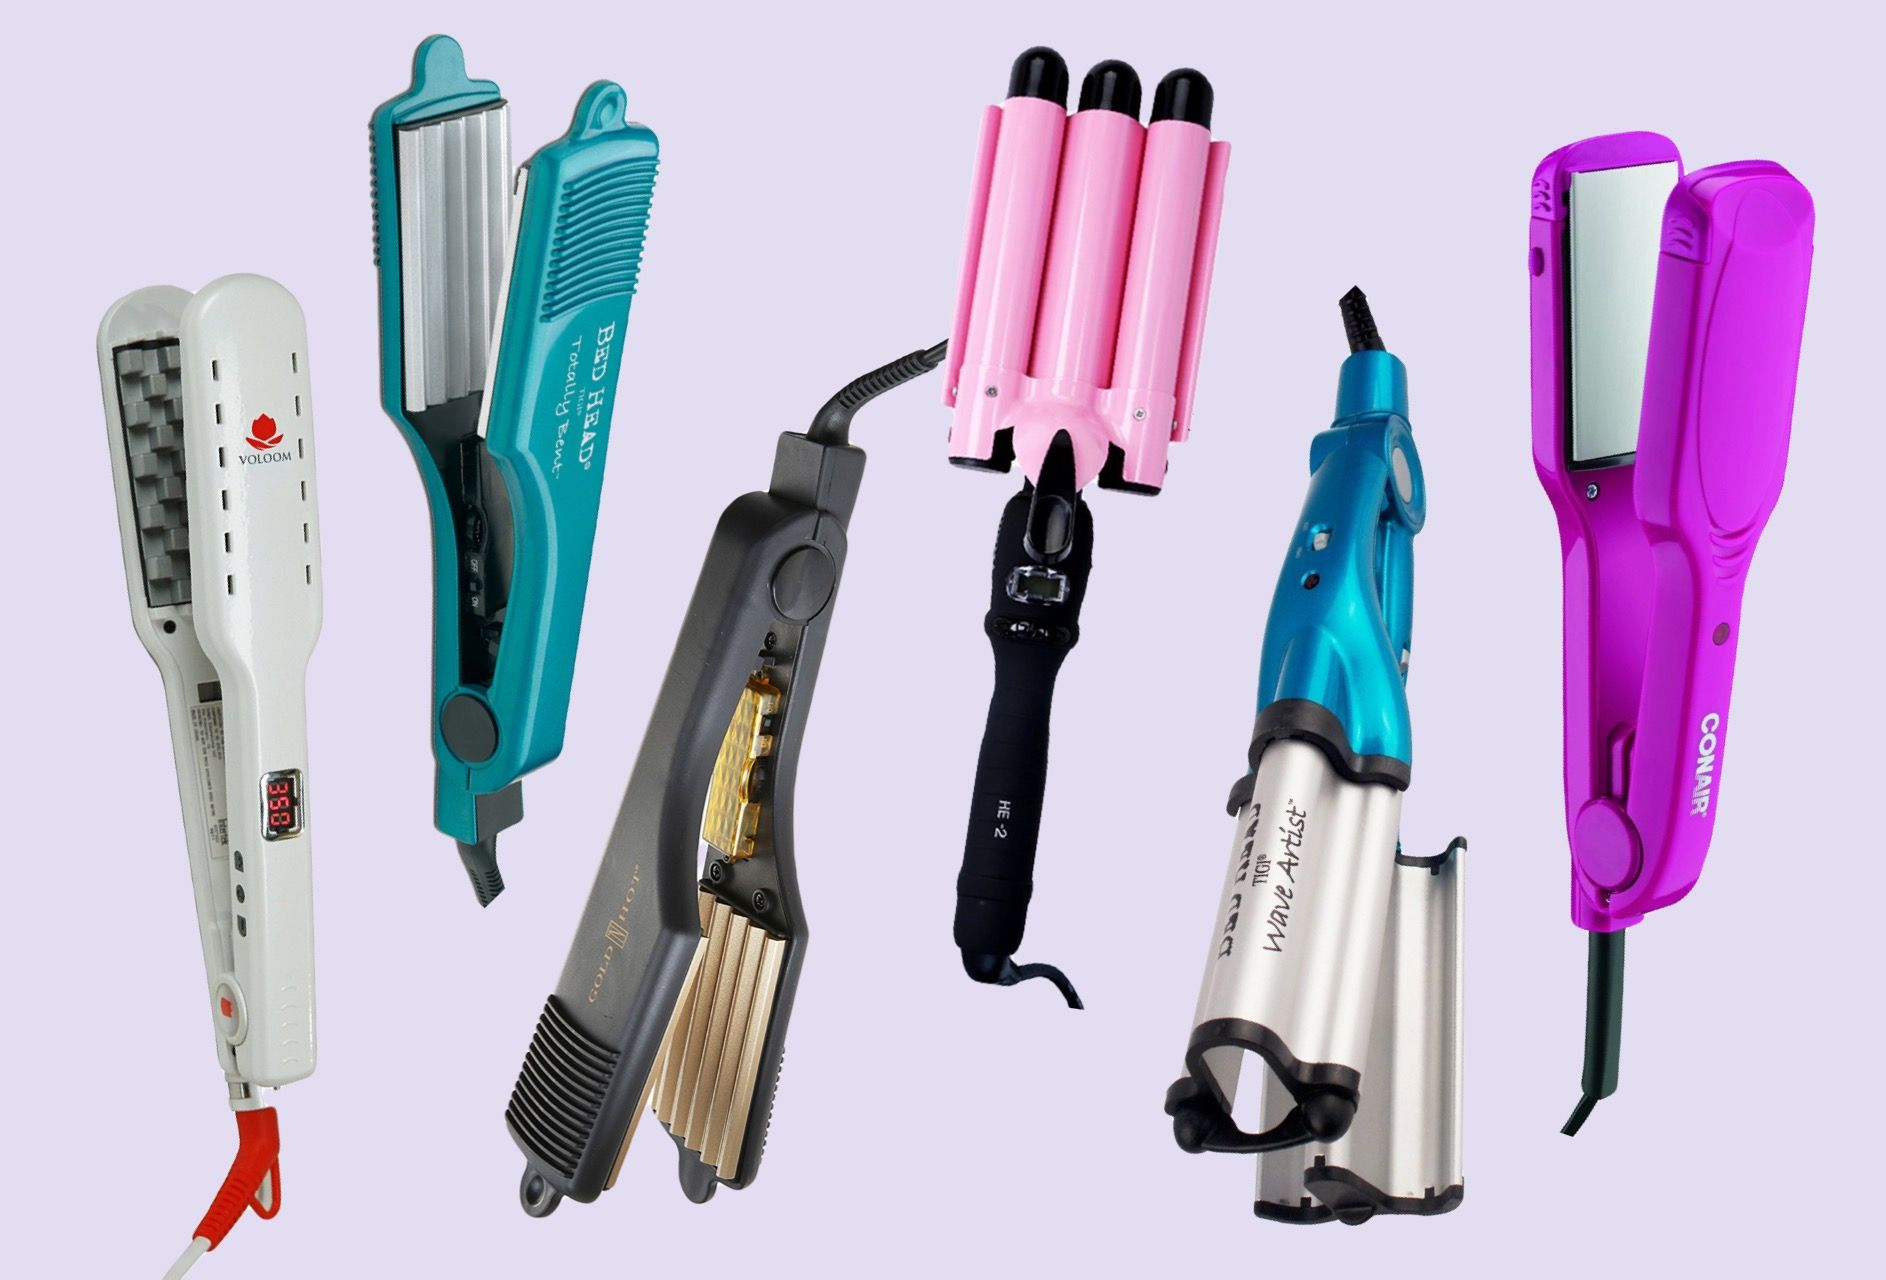 7 Best Hair Crimpers For All Hair Lengths And Textures Hair Crimper Crimped Hair Cool Hairstyles